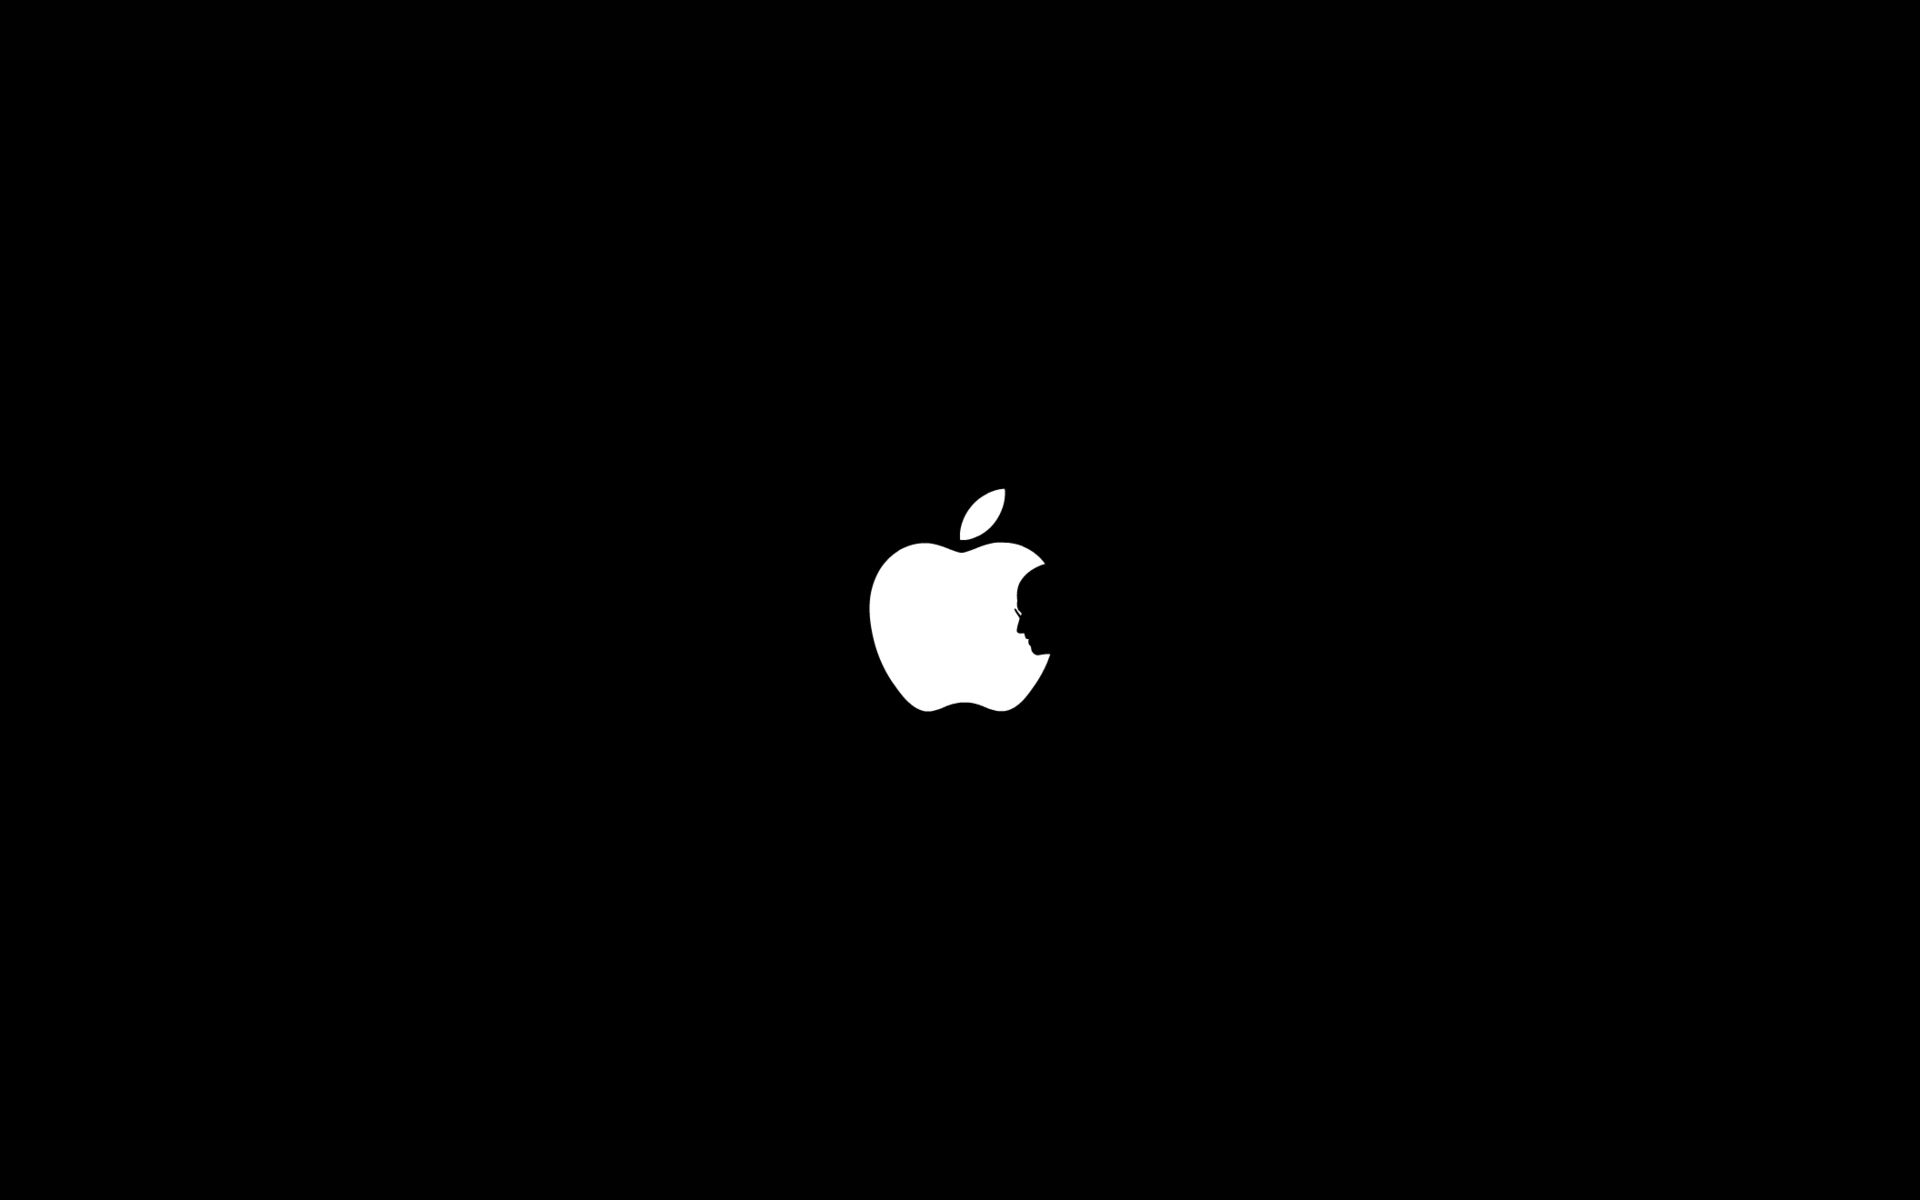 10 Most Popular Hd Apple Logo Wallpaper FULL HD 1920—1080